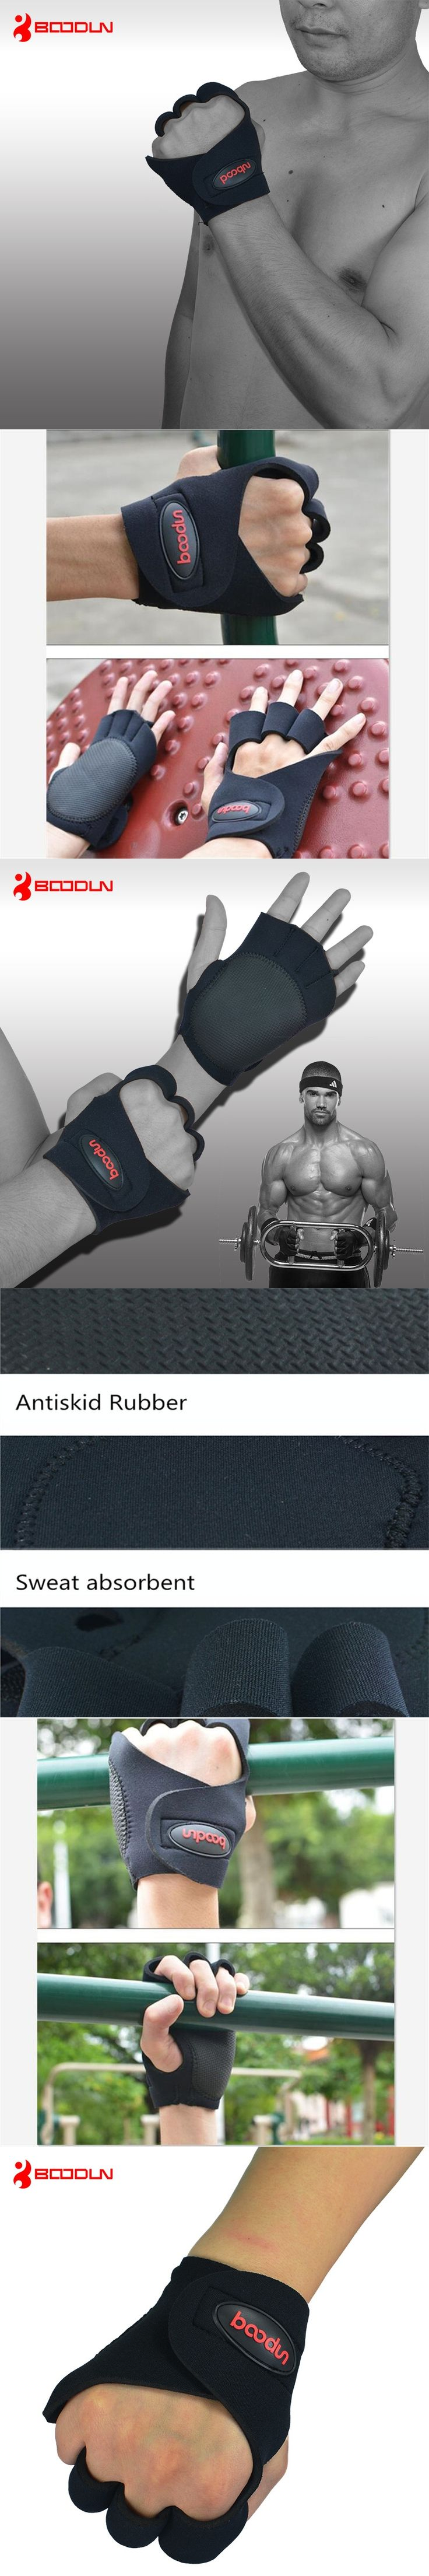 1 Pair Brand Men Women Gym Body Building Training Sports Fitness Weight Lifting Gloves Antiskid Hollow Dumbbell Barbell Gloves